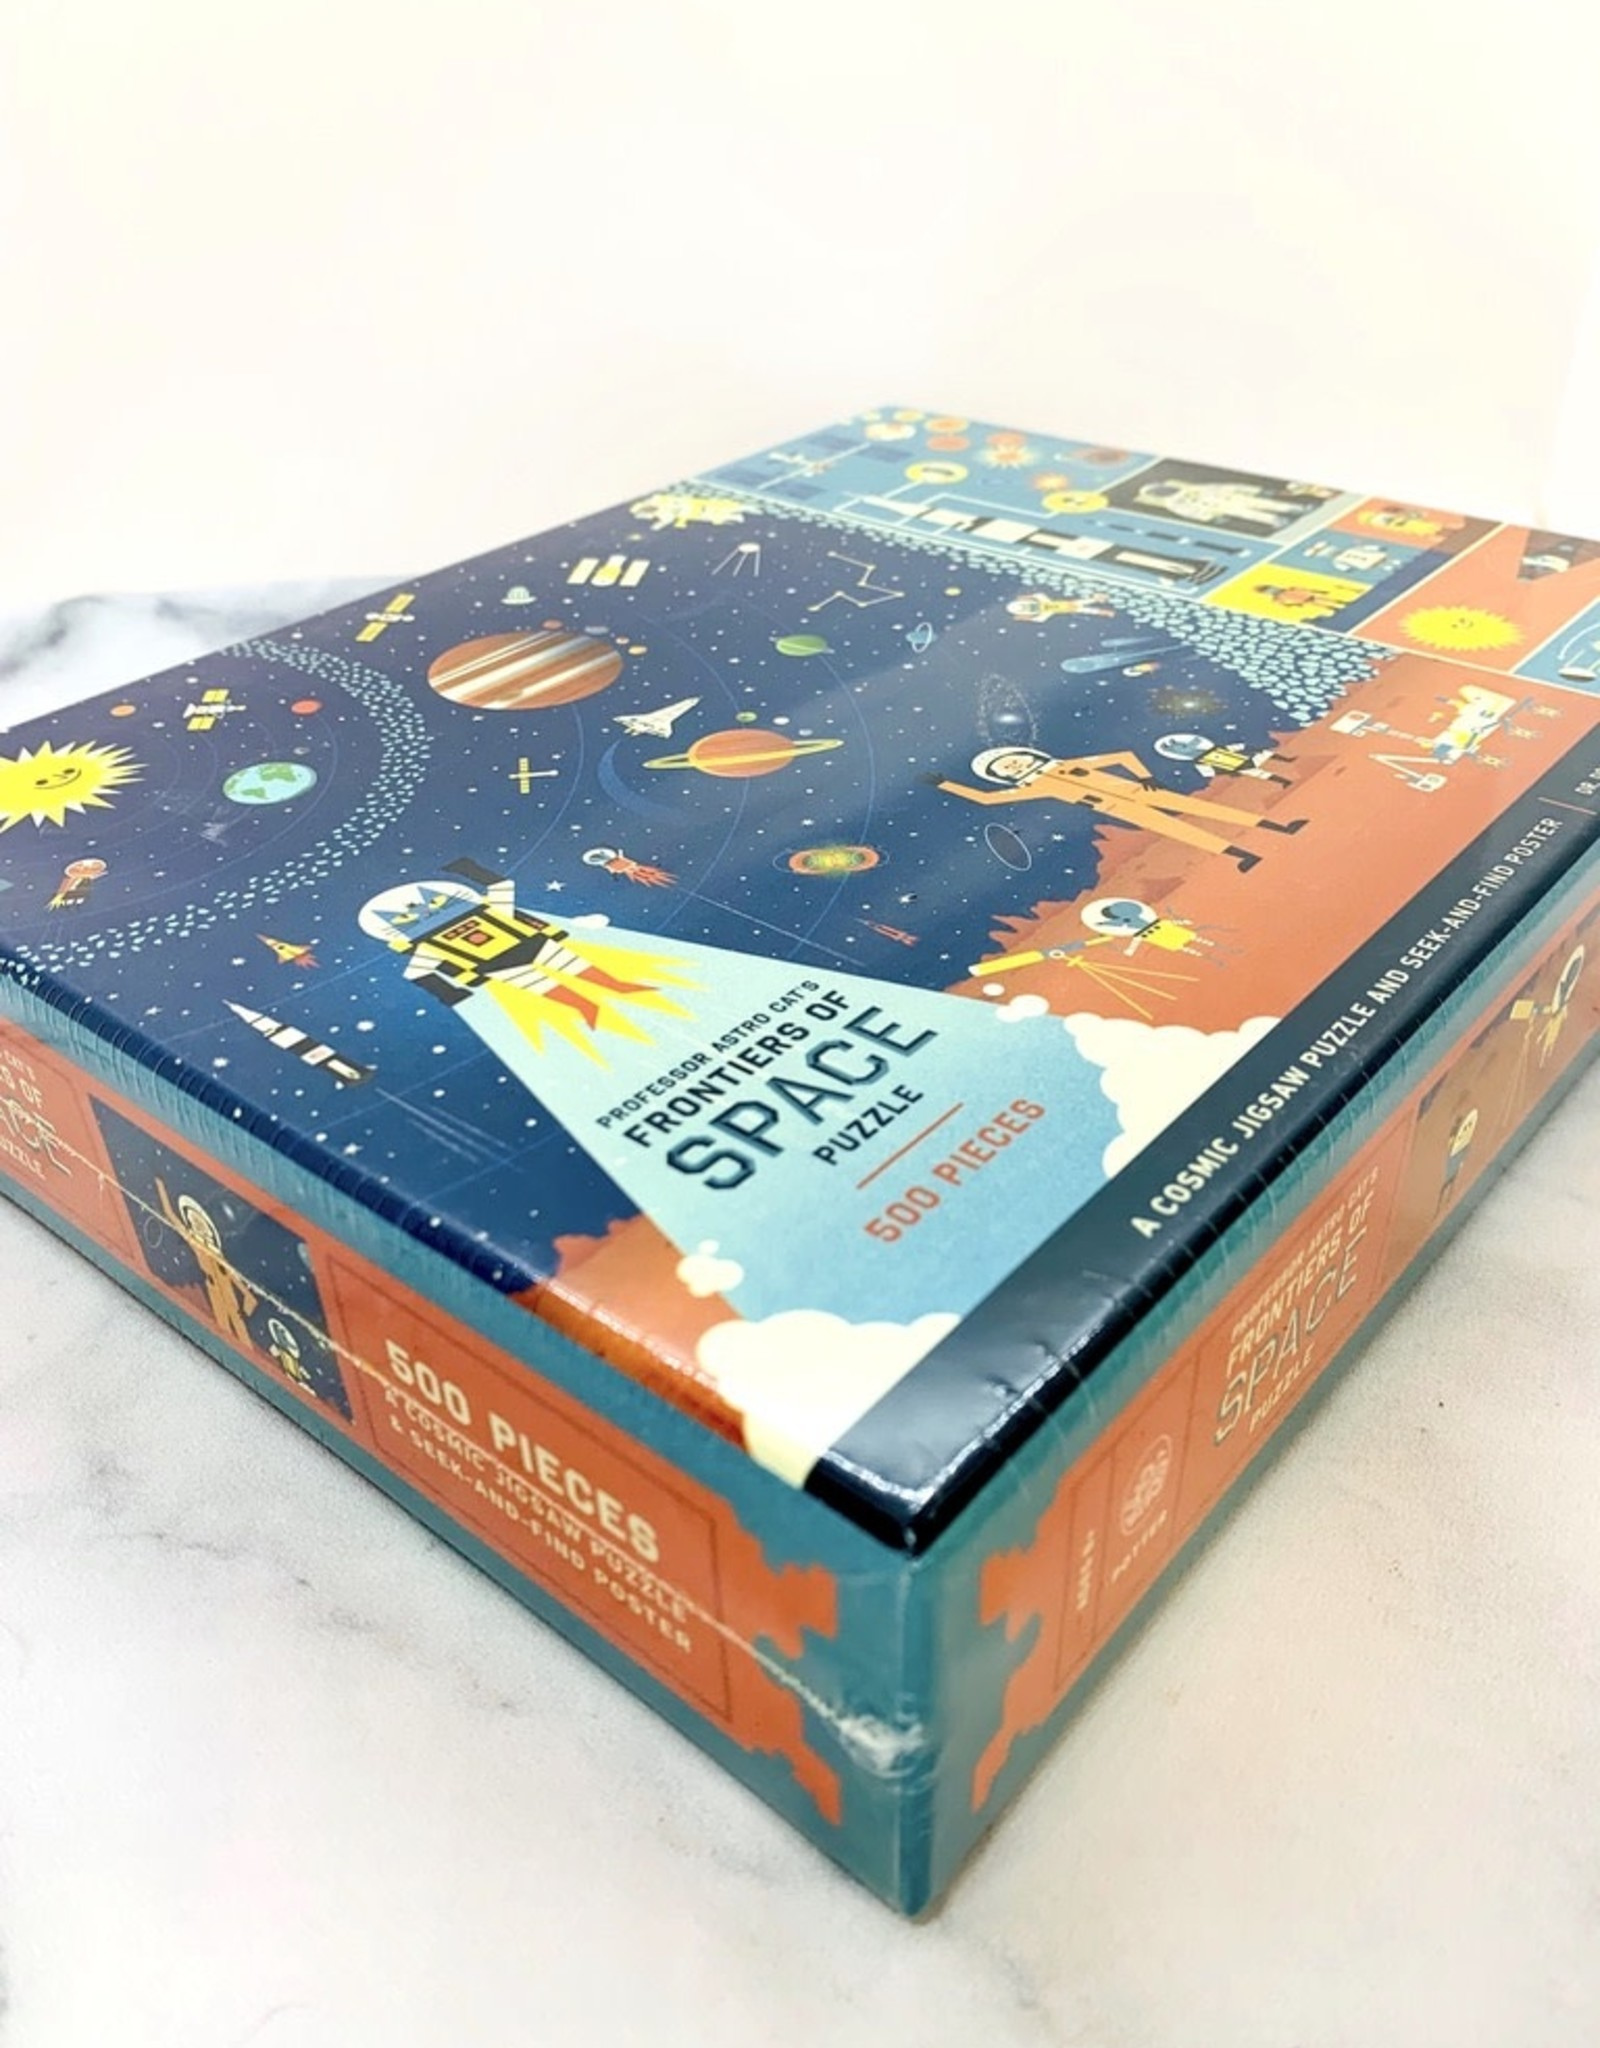 Professor Astro Cat's Frontiers of Space 500 Piece Puzzle